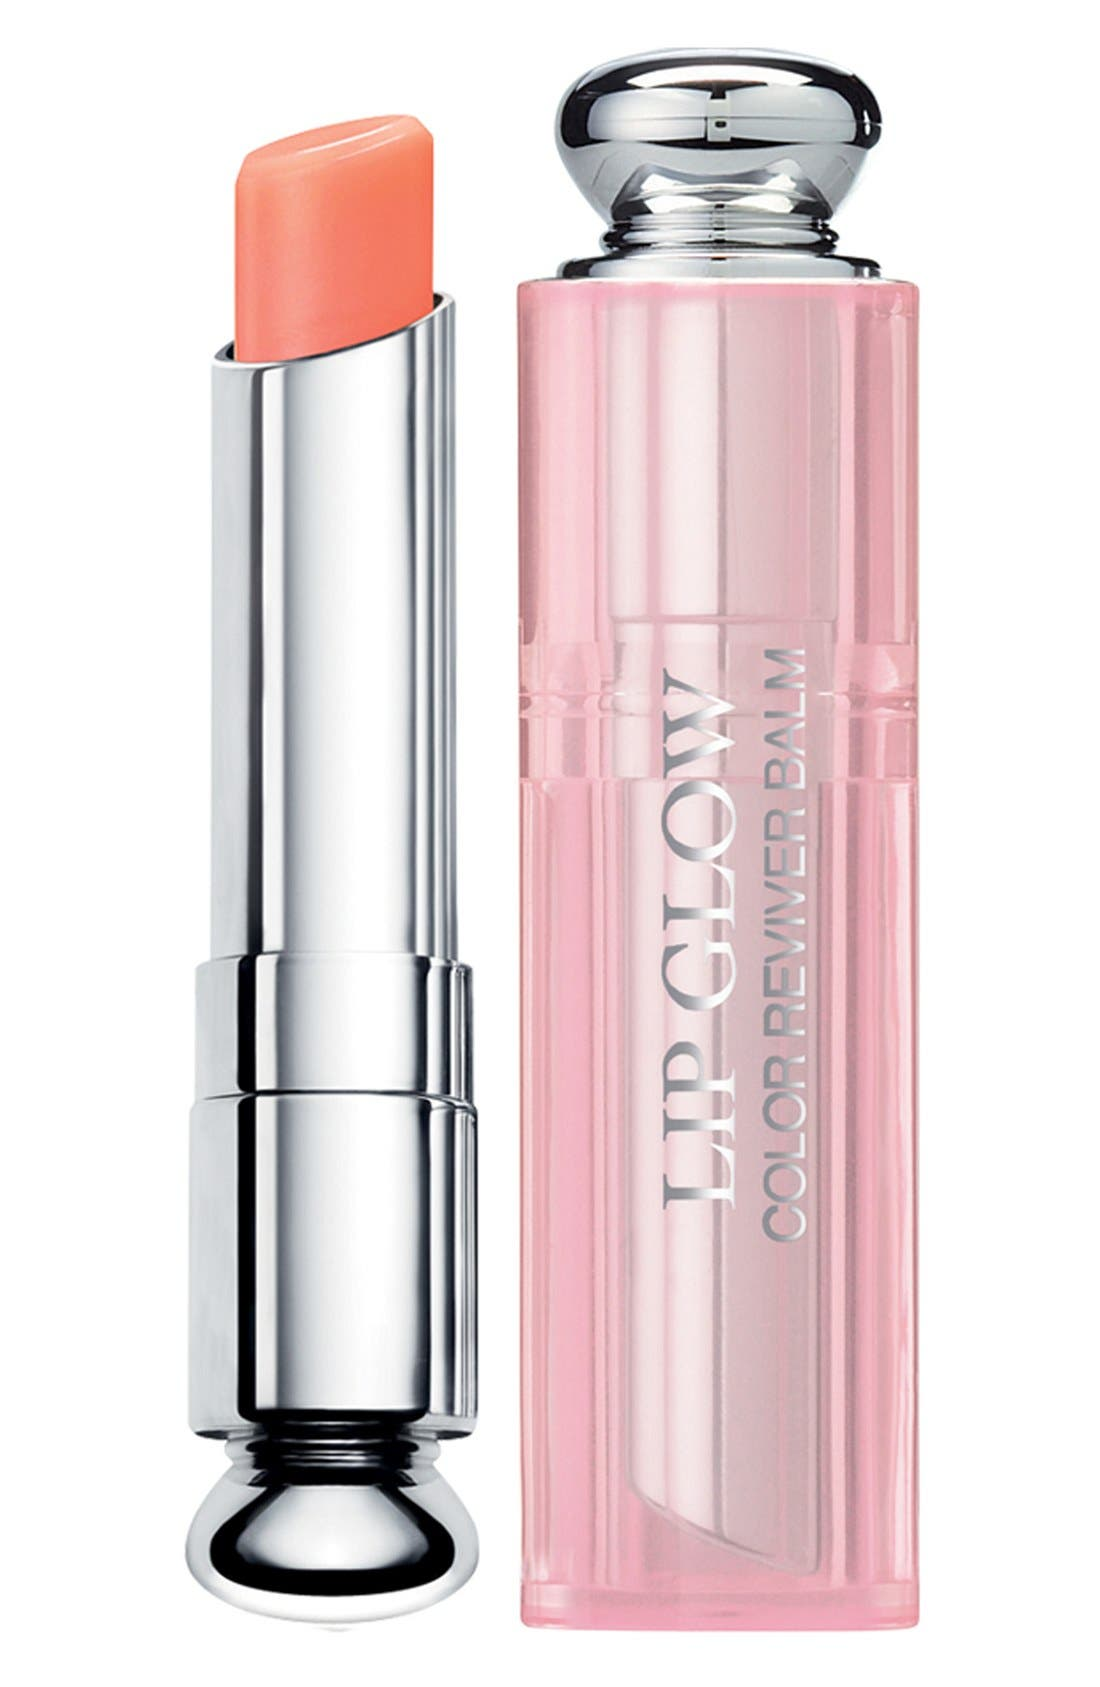 Dior Addict Lip Glow Color Reviving Lip Balm